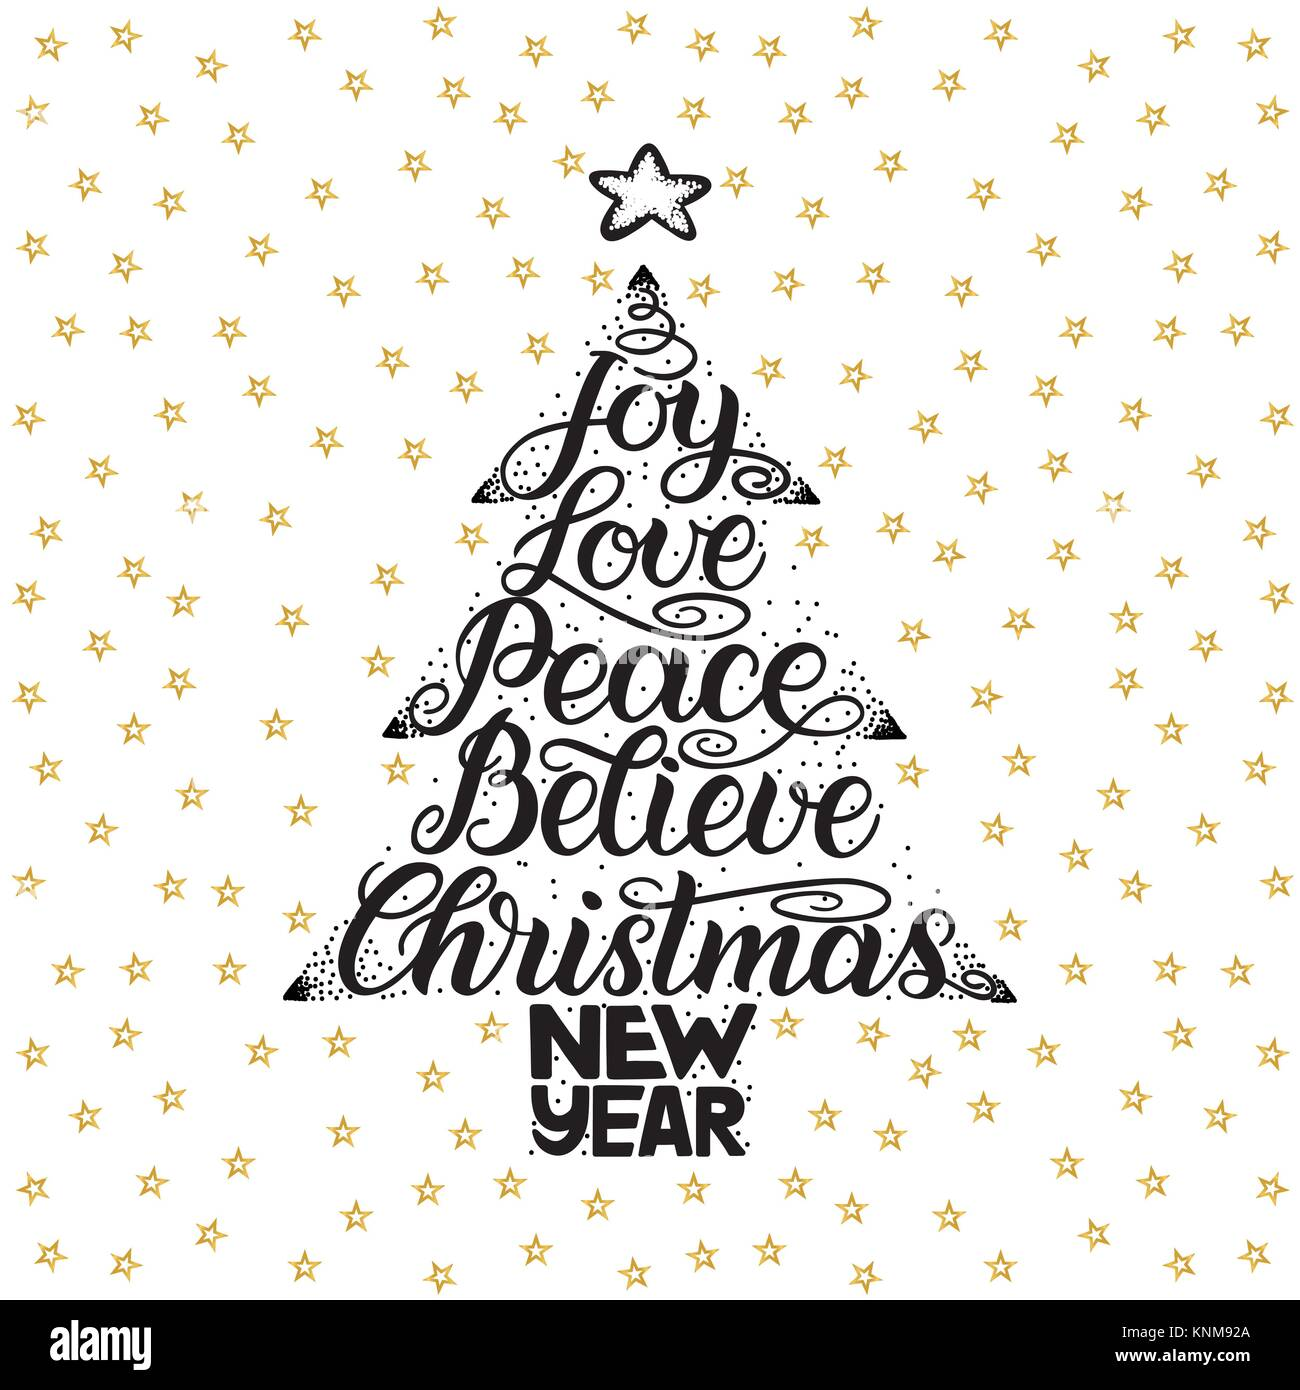 joy love peace believe christmas new year handwriting lettering for greeting card invitation print poster typography holiday message merry x